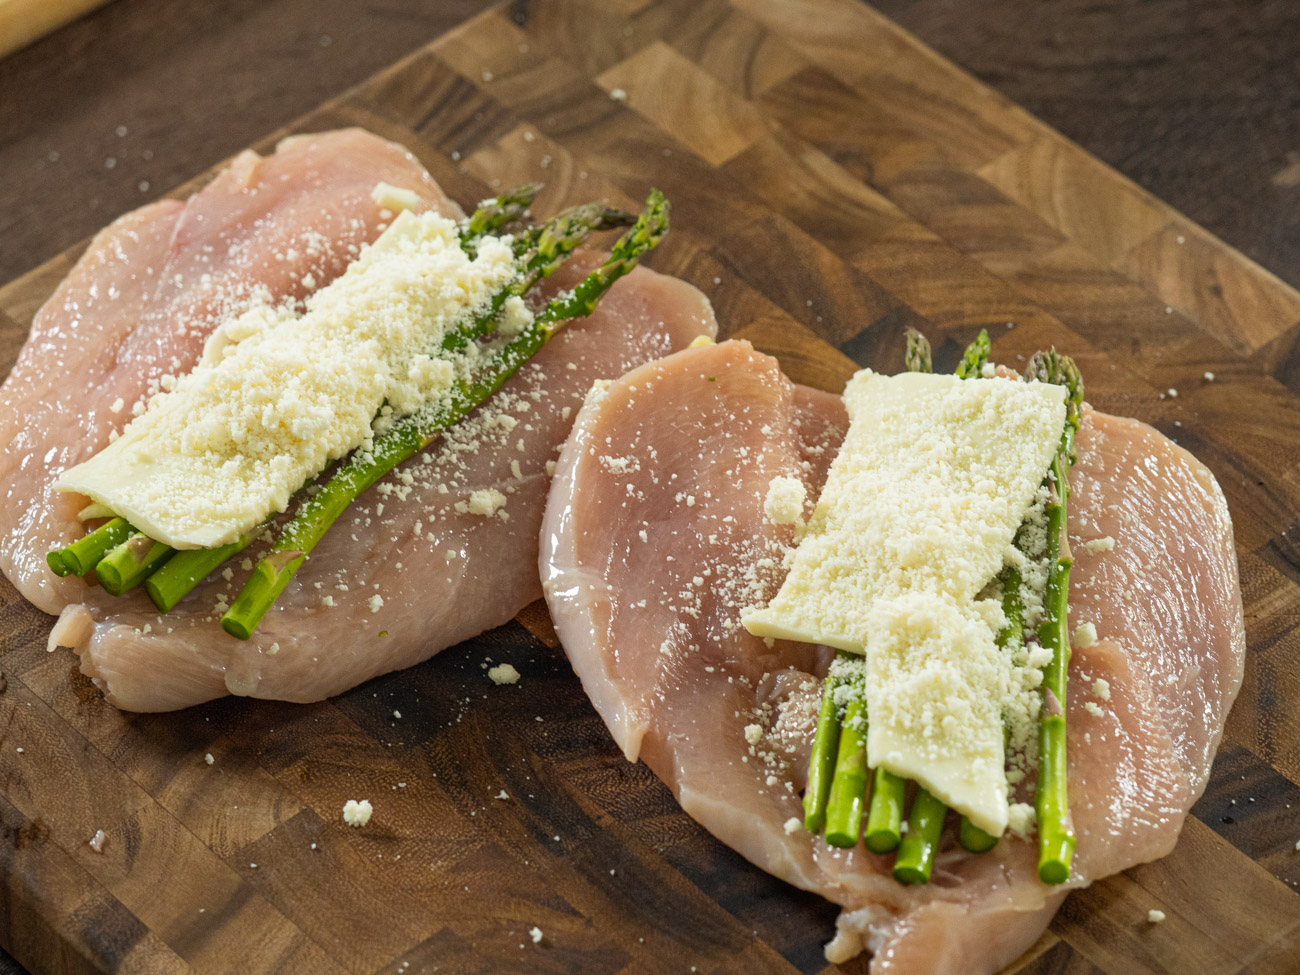 Place 2 slices of mozzarella, 1 tablespoon Parmesan and 5-6 stalks of asparagus on each piece.